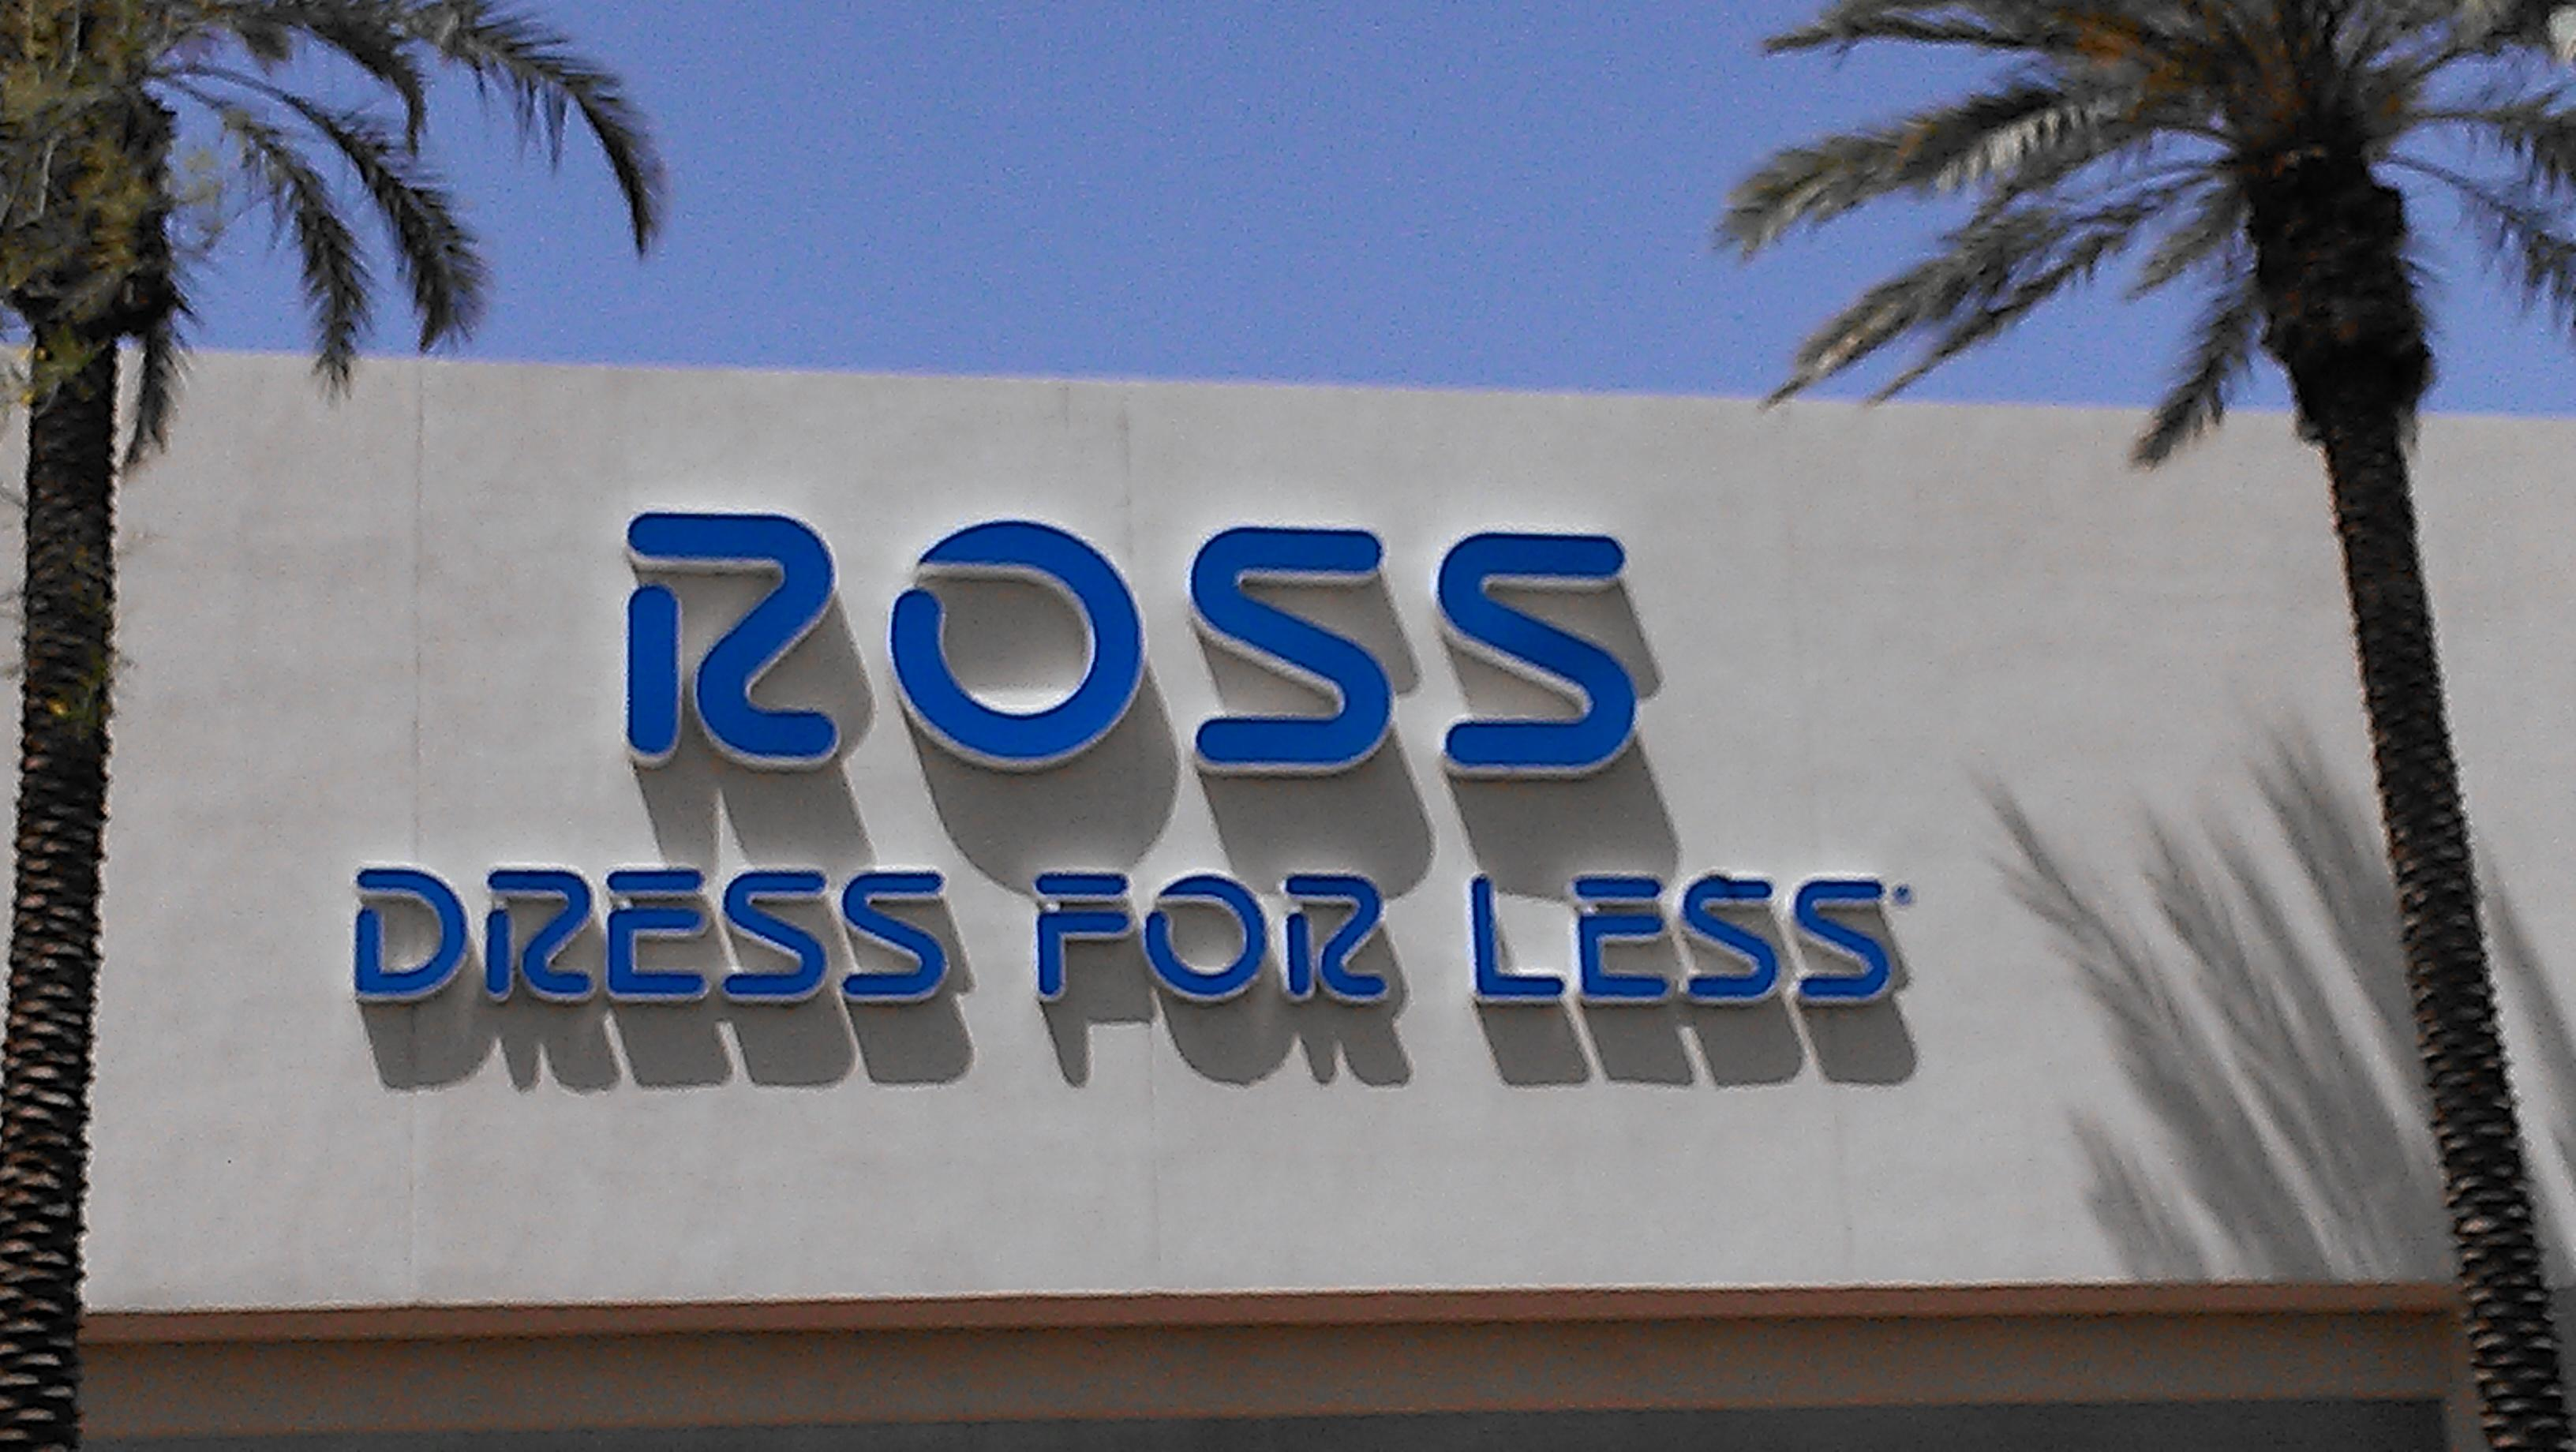 Ross Dress for Less - DAL Air Conditioning & Heating Inc.